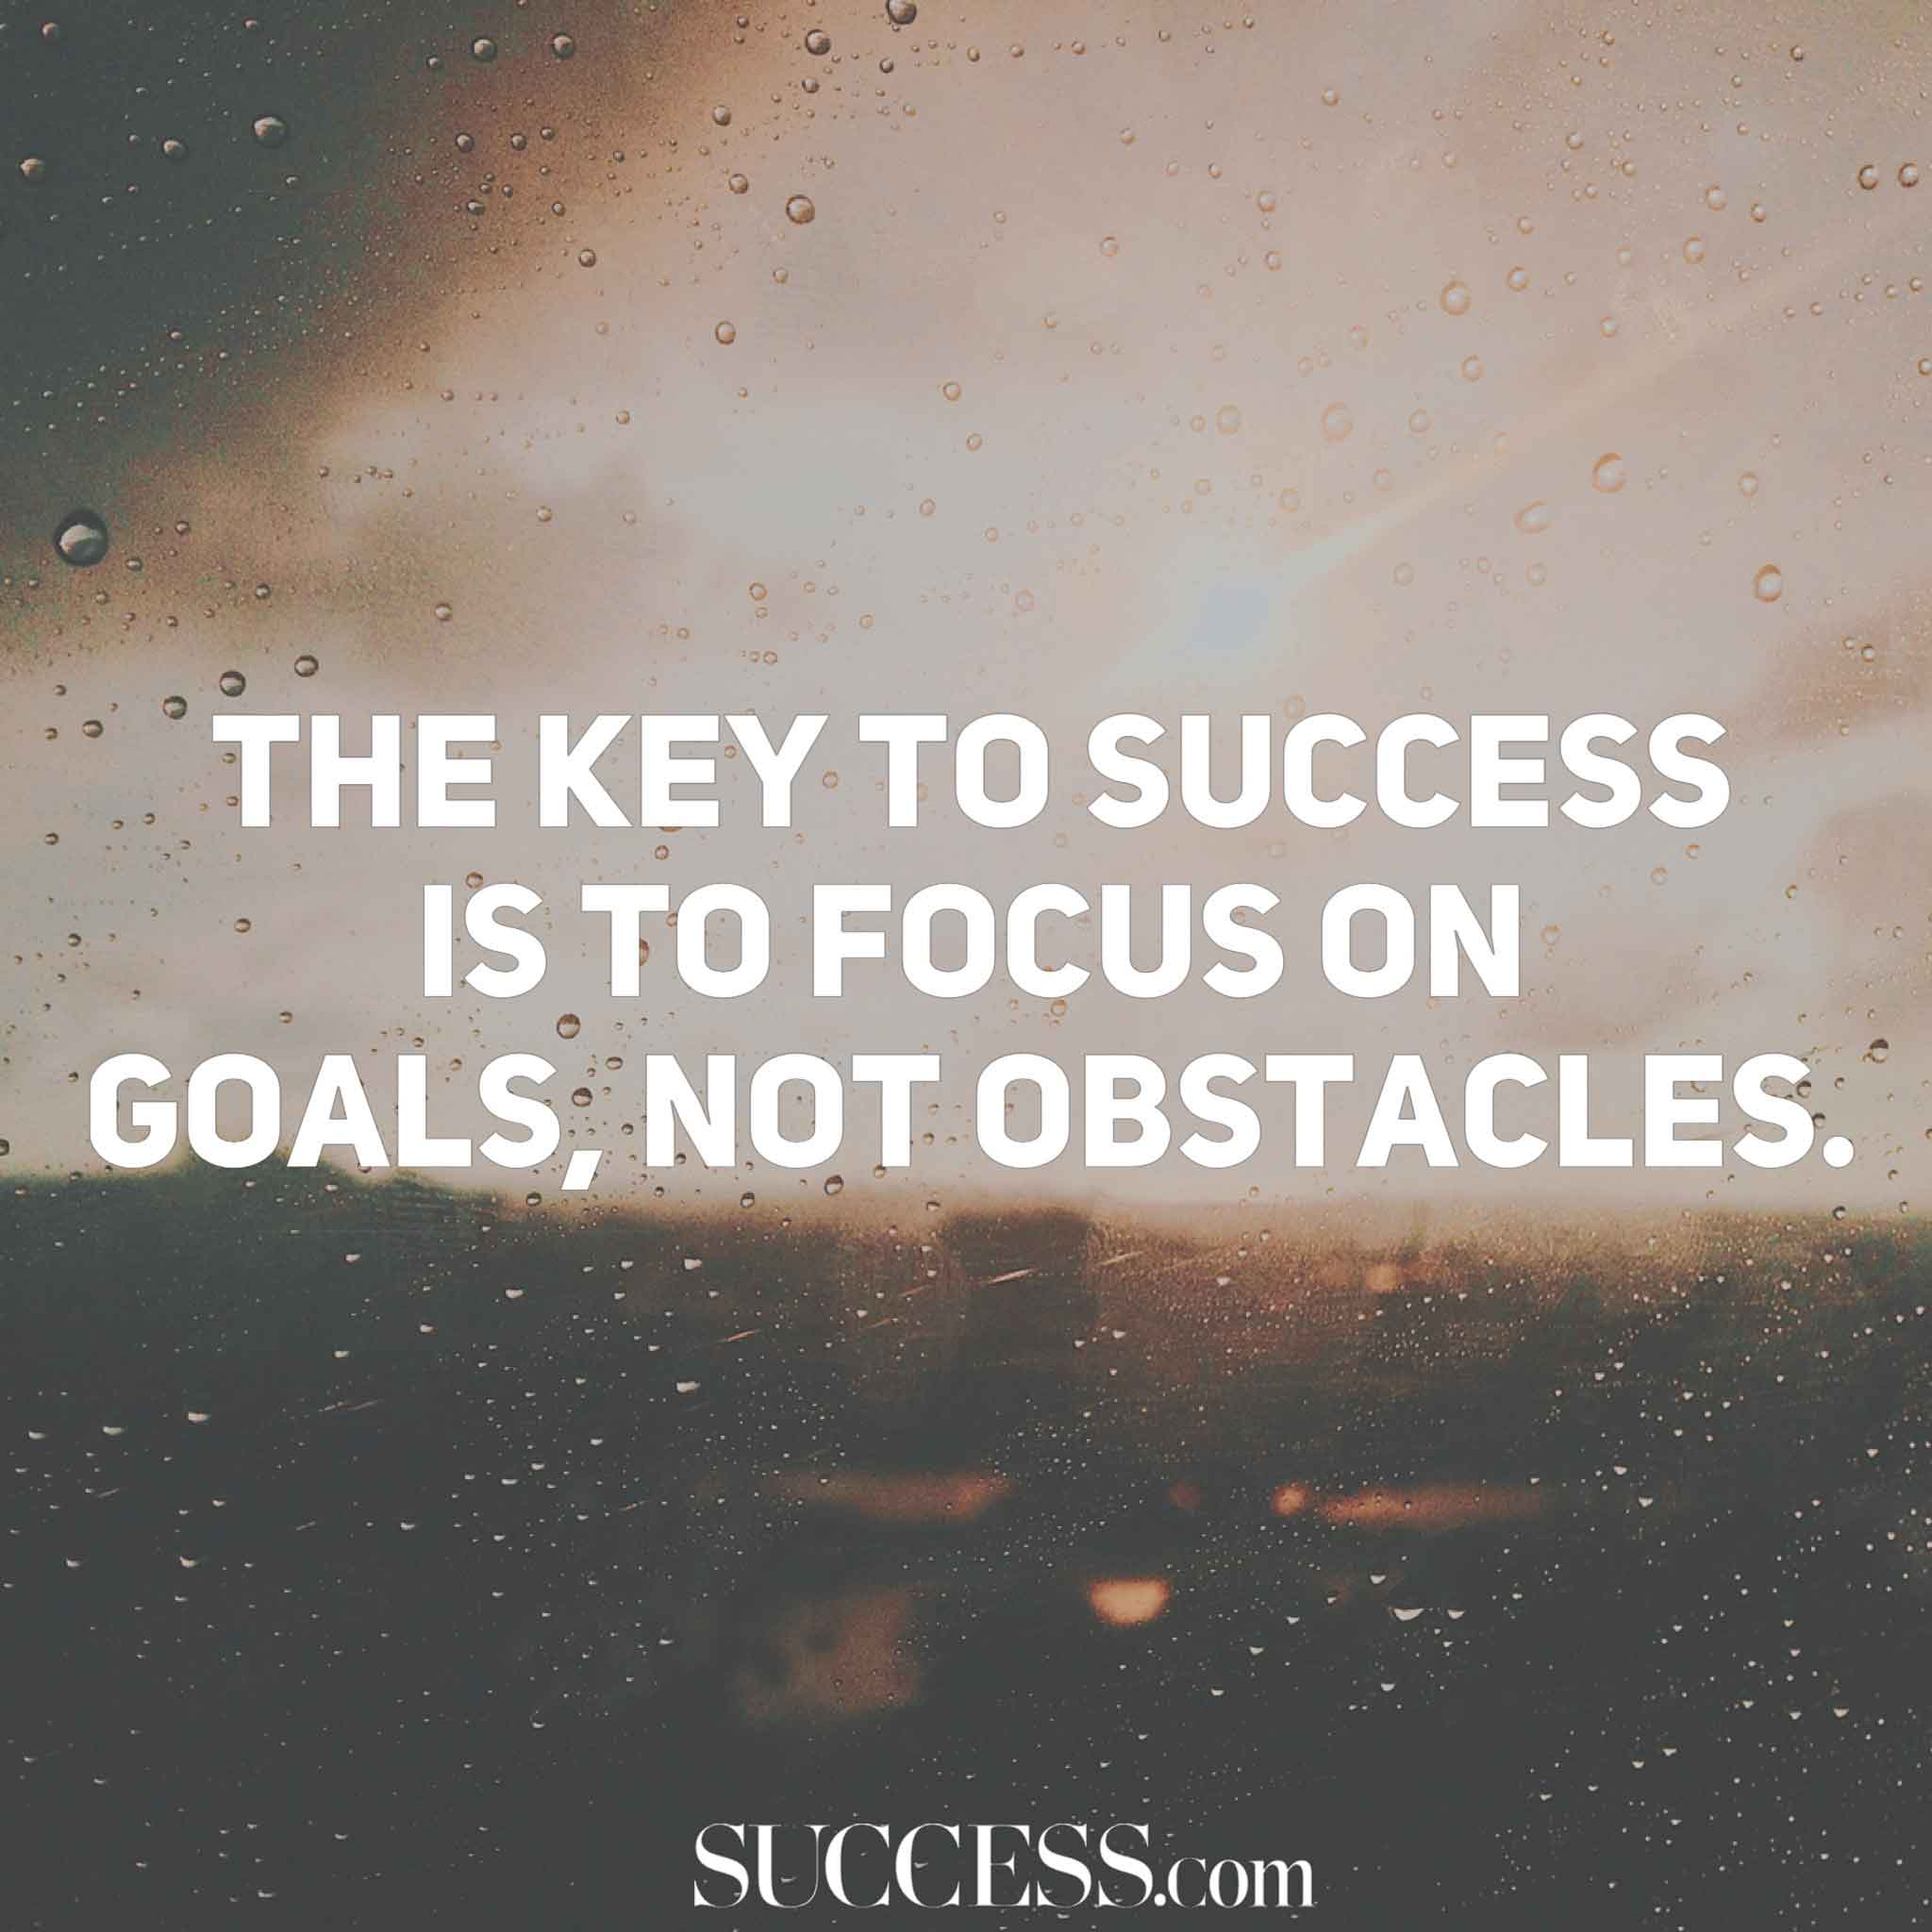 Motivational Quot: 17 Motivational Quotes To Inspire You To Be Successful